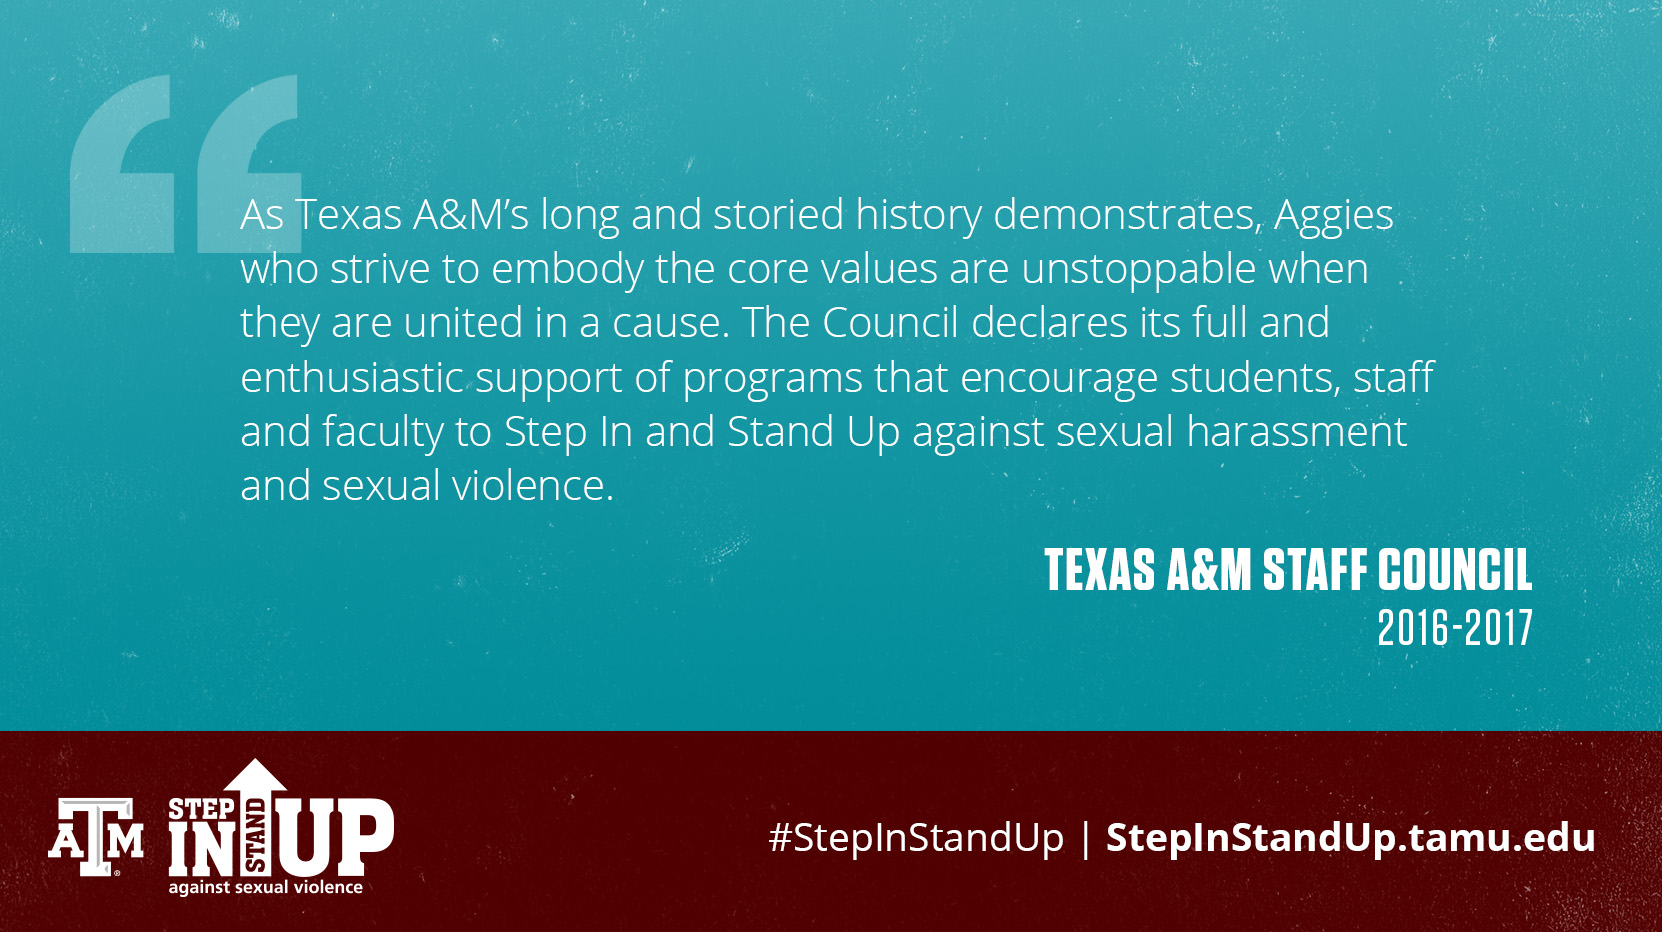 As Texas A&M's long and storied history demonstrates, Aggies who strive to embody the core values are unstoppable when they are united in a cause. The Council declares its full and enthusiastic support of programs that encourage students, staff and faculty to Step In and Stand Up against sexual harassment and sexual violence. - Texas A&M Staff Council 2016-2017